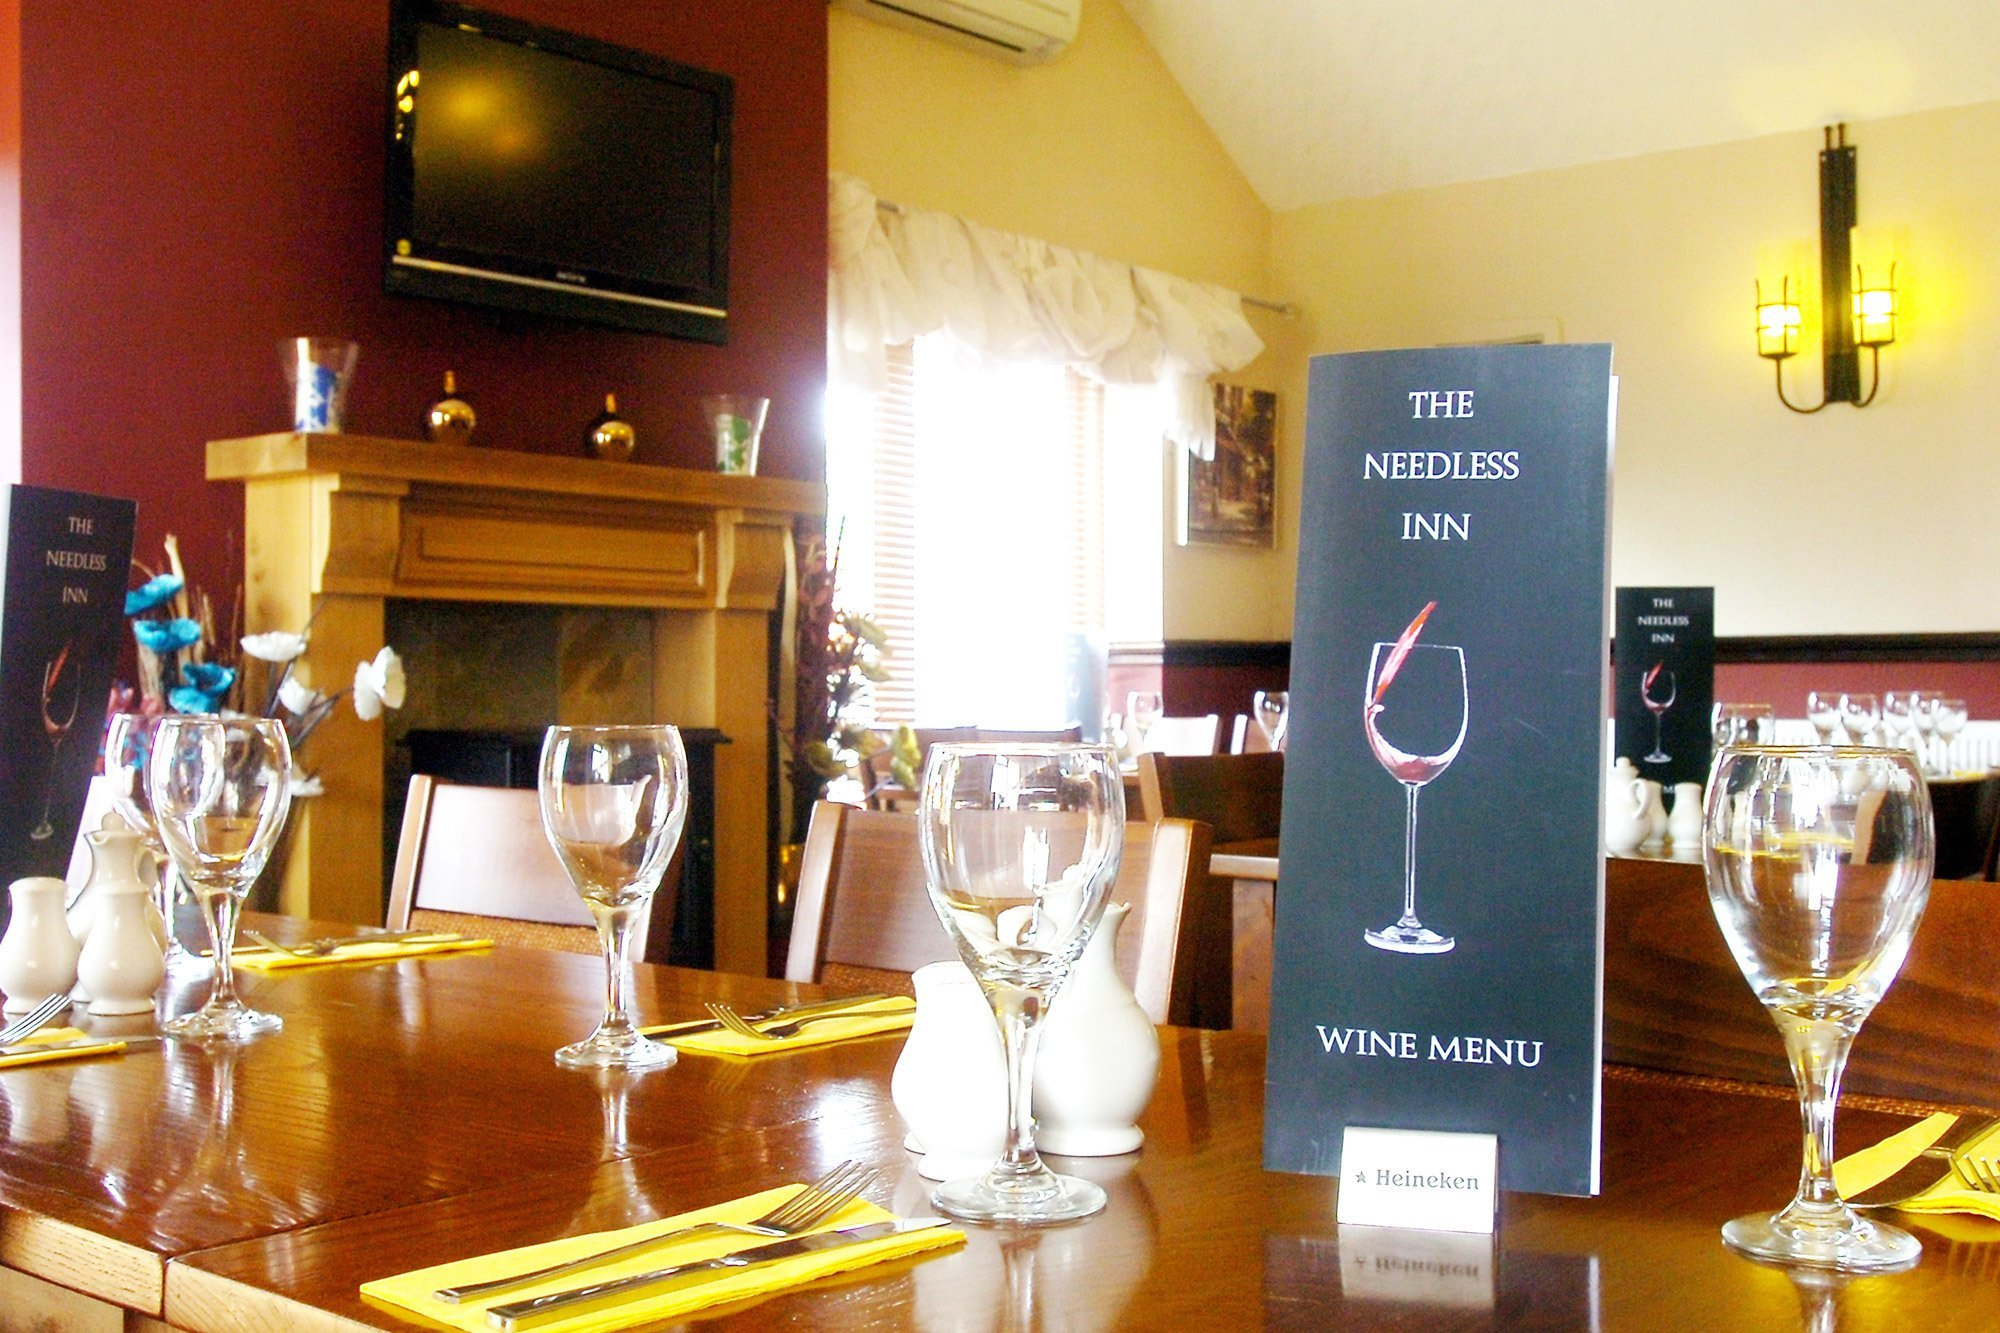 View the wine menu on table at the Needless Inn